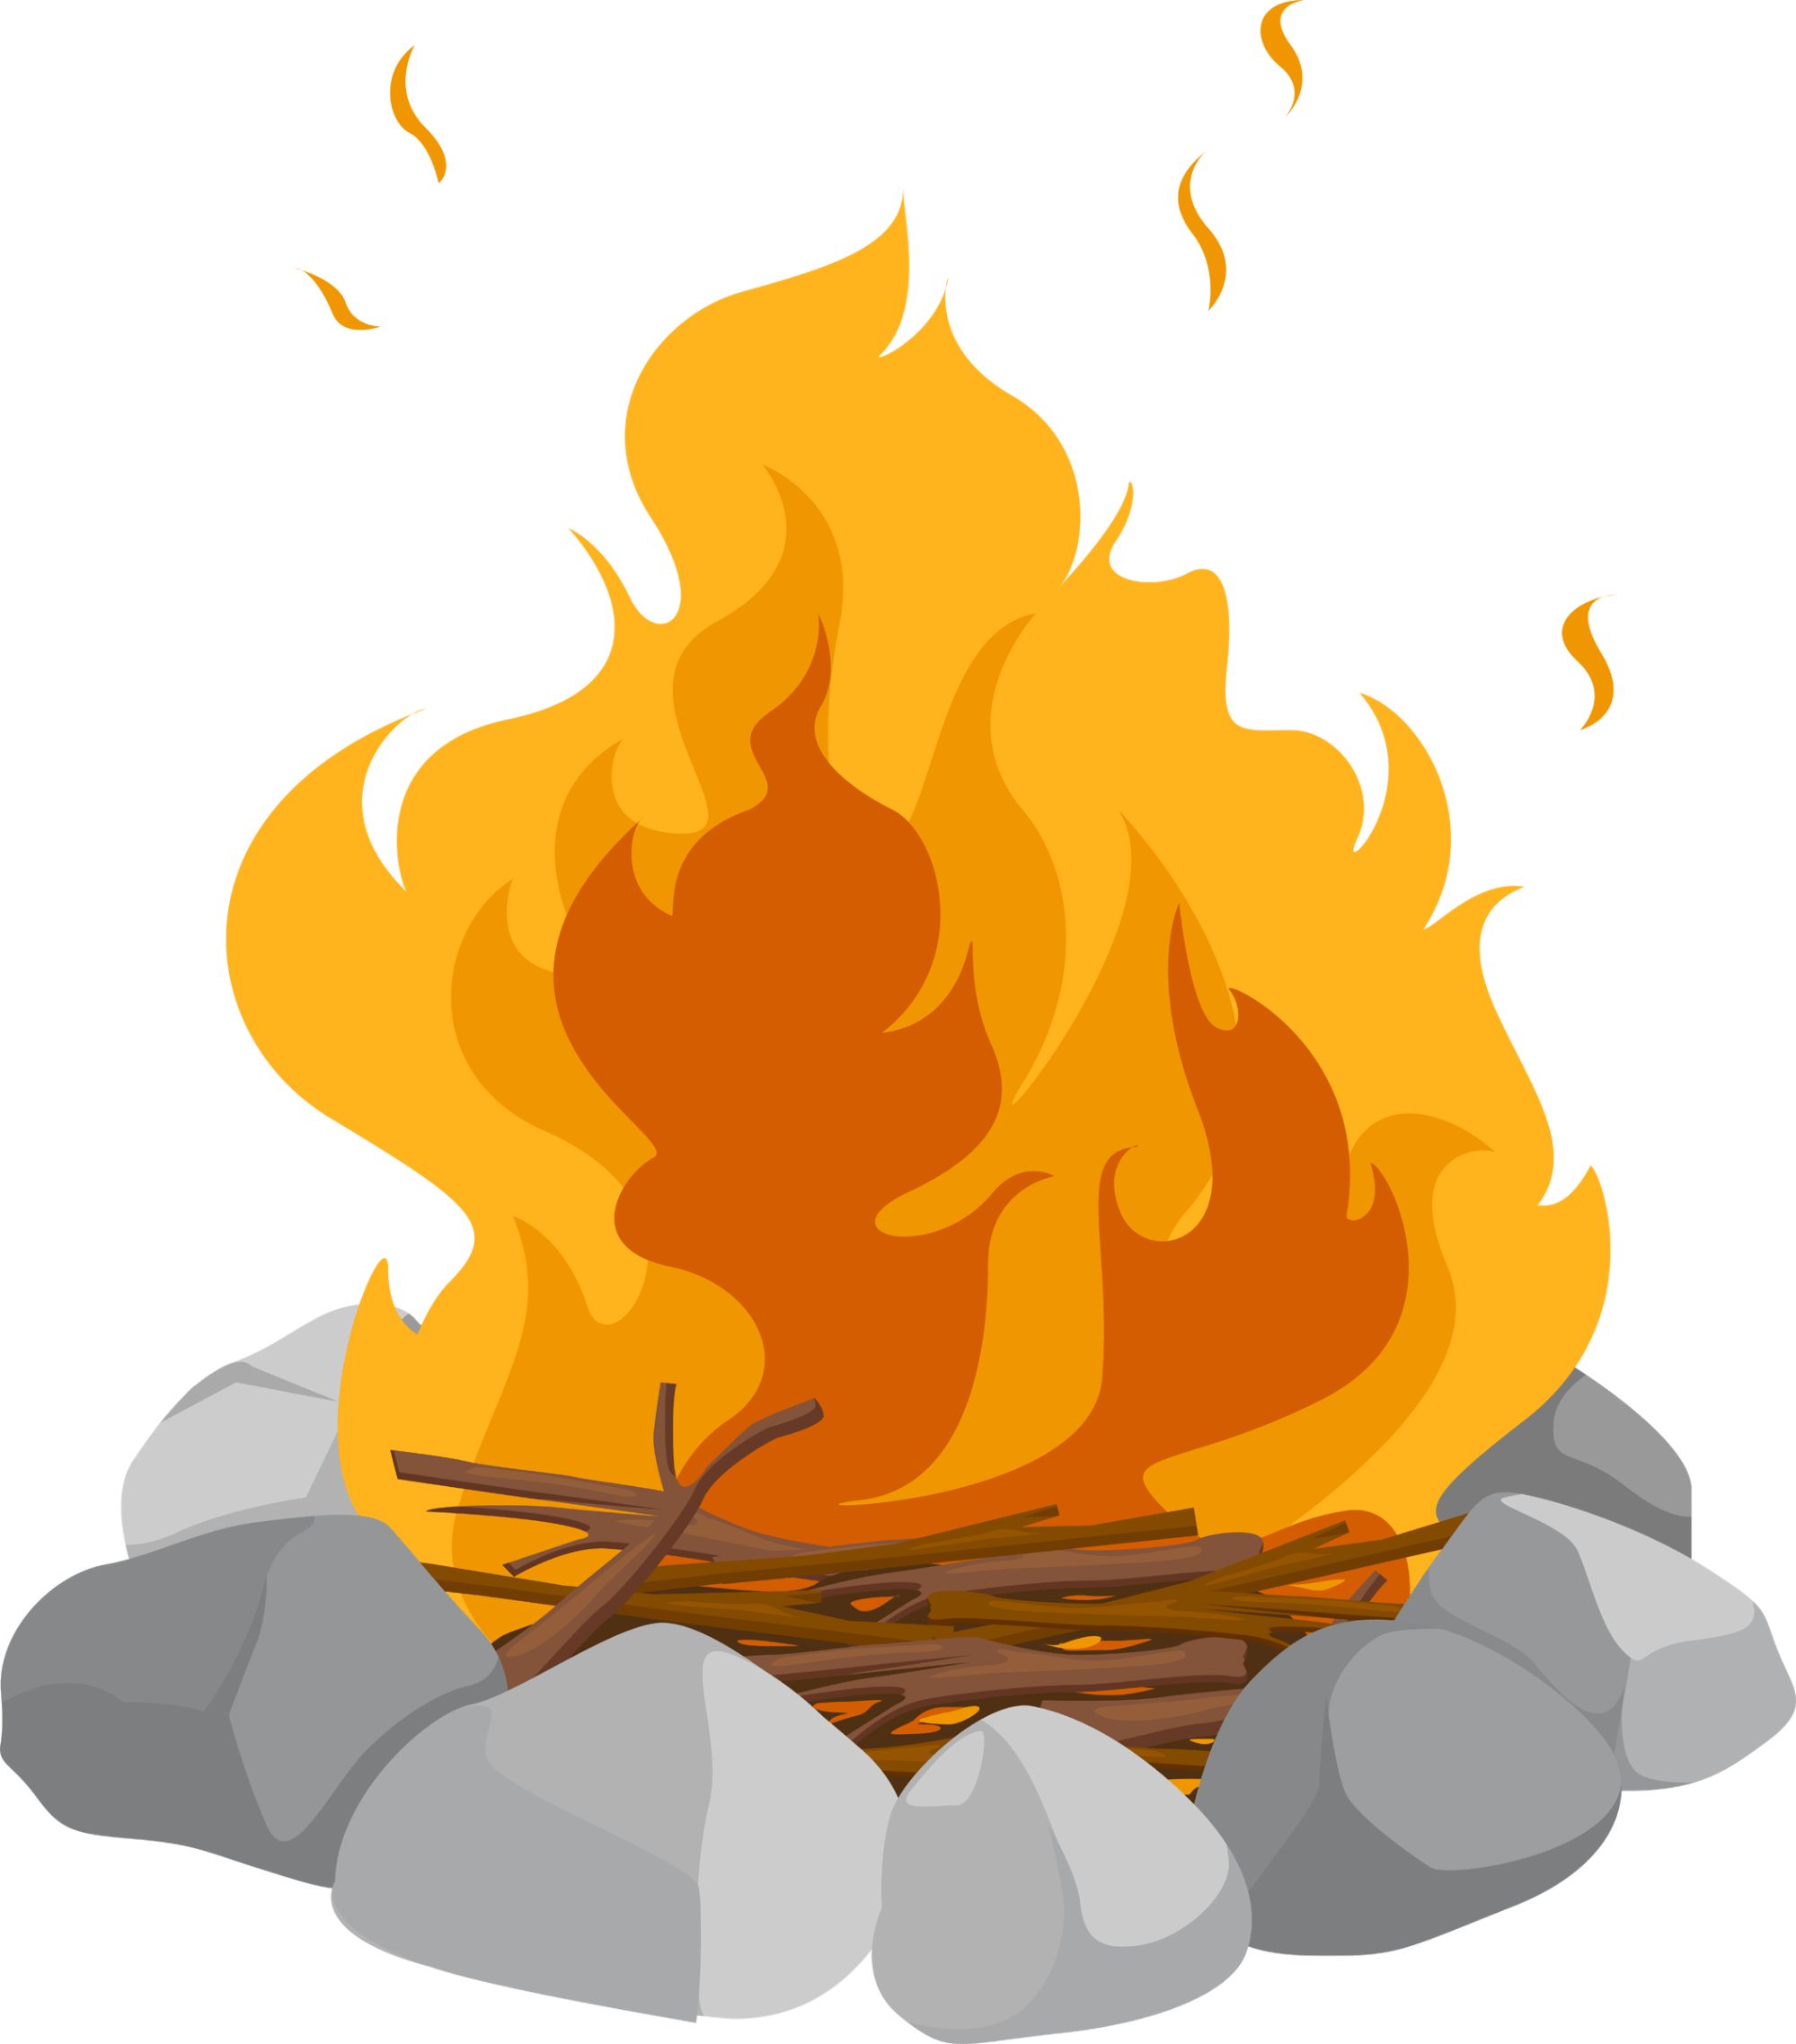 hight resolution of campfire png images transparent free download pngmart smores clipart